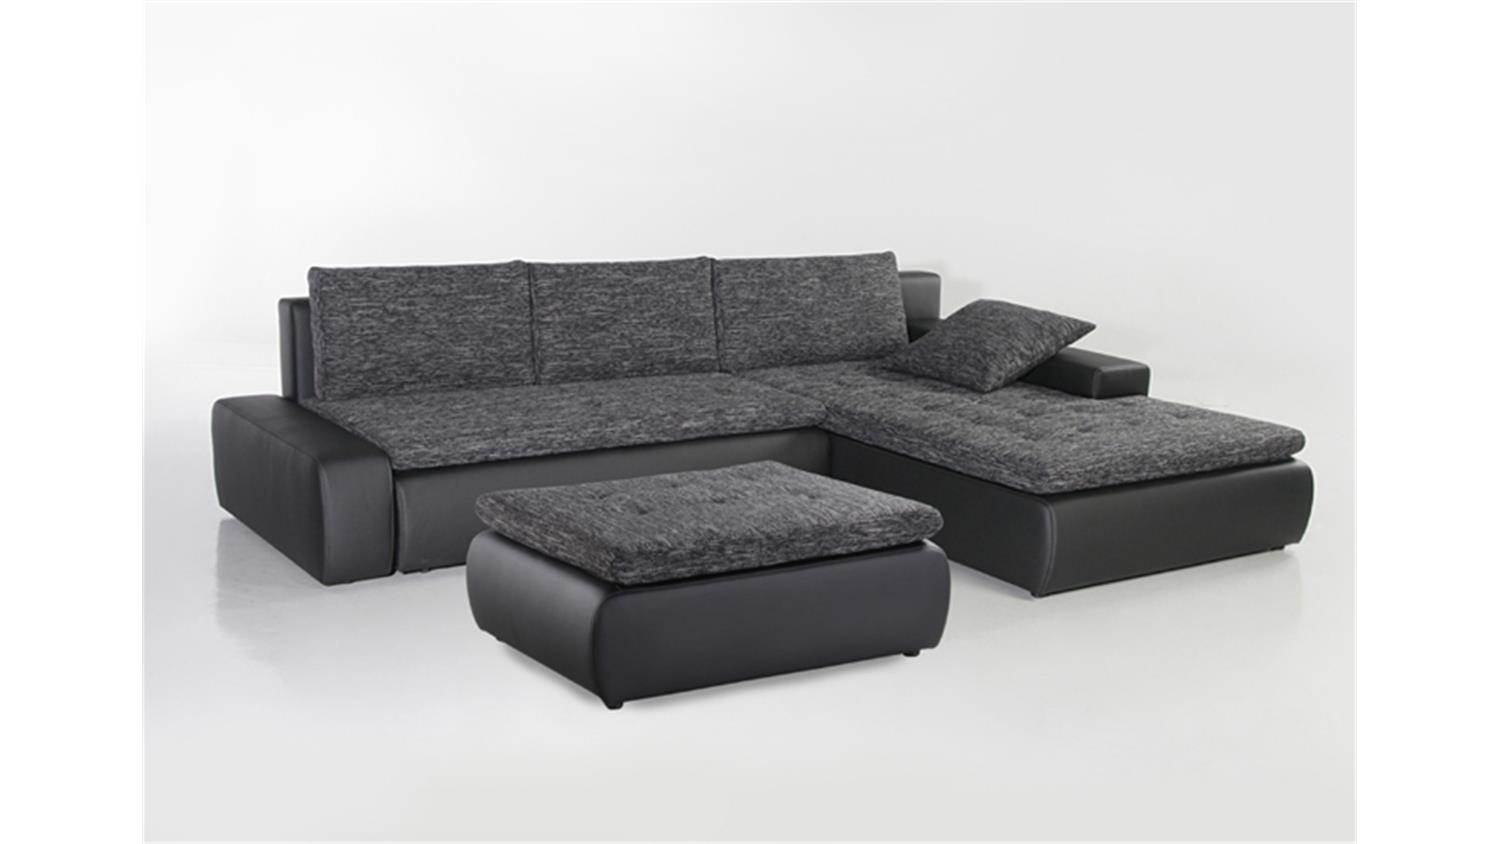 ecksofa alfa wohnlandschaft in schwarz grau mit g stebett. Black Bedroom Furniture Sets. Home Design Ideas